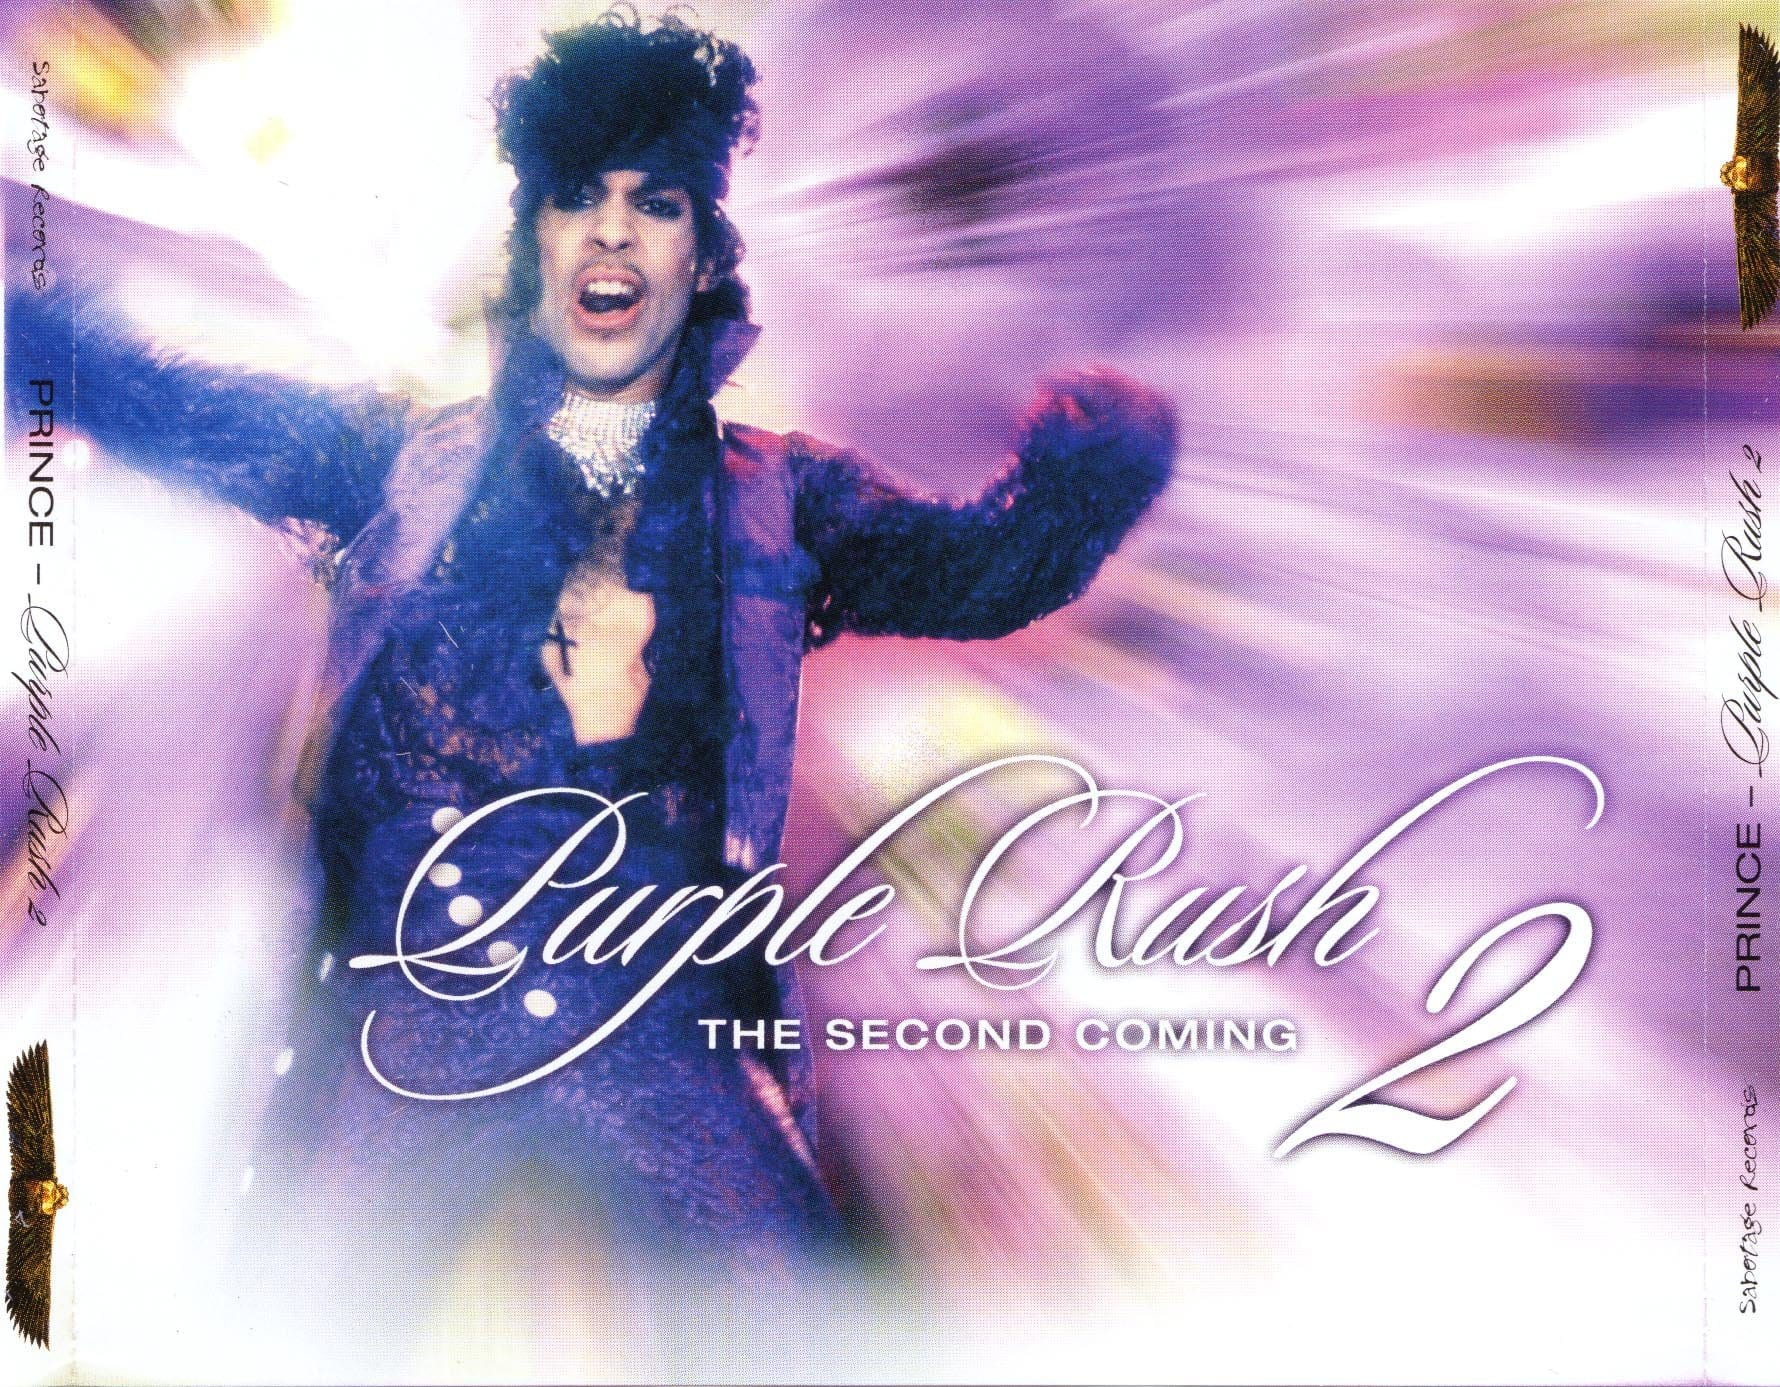 Prince - Purple Rush 2: The Second Coming (Rehearsals 1982-1984) 4 CD SET 9